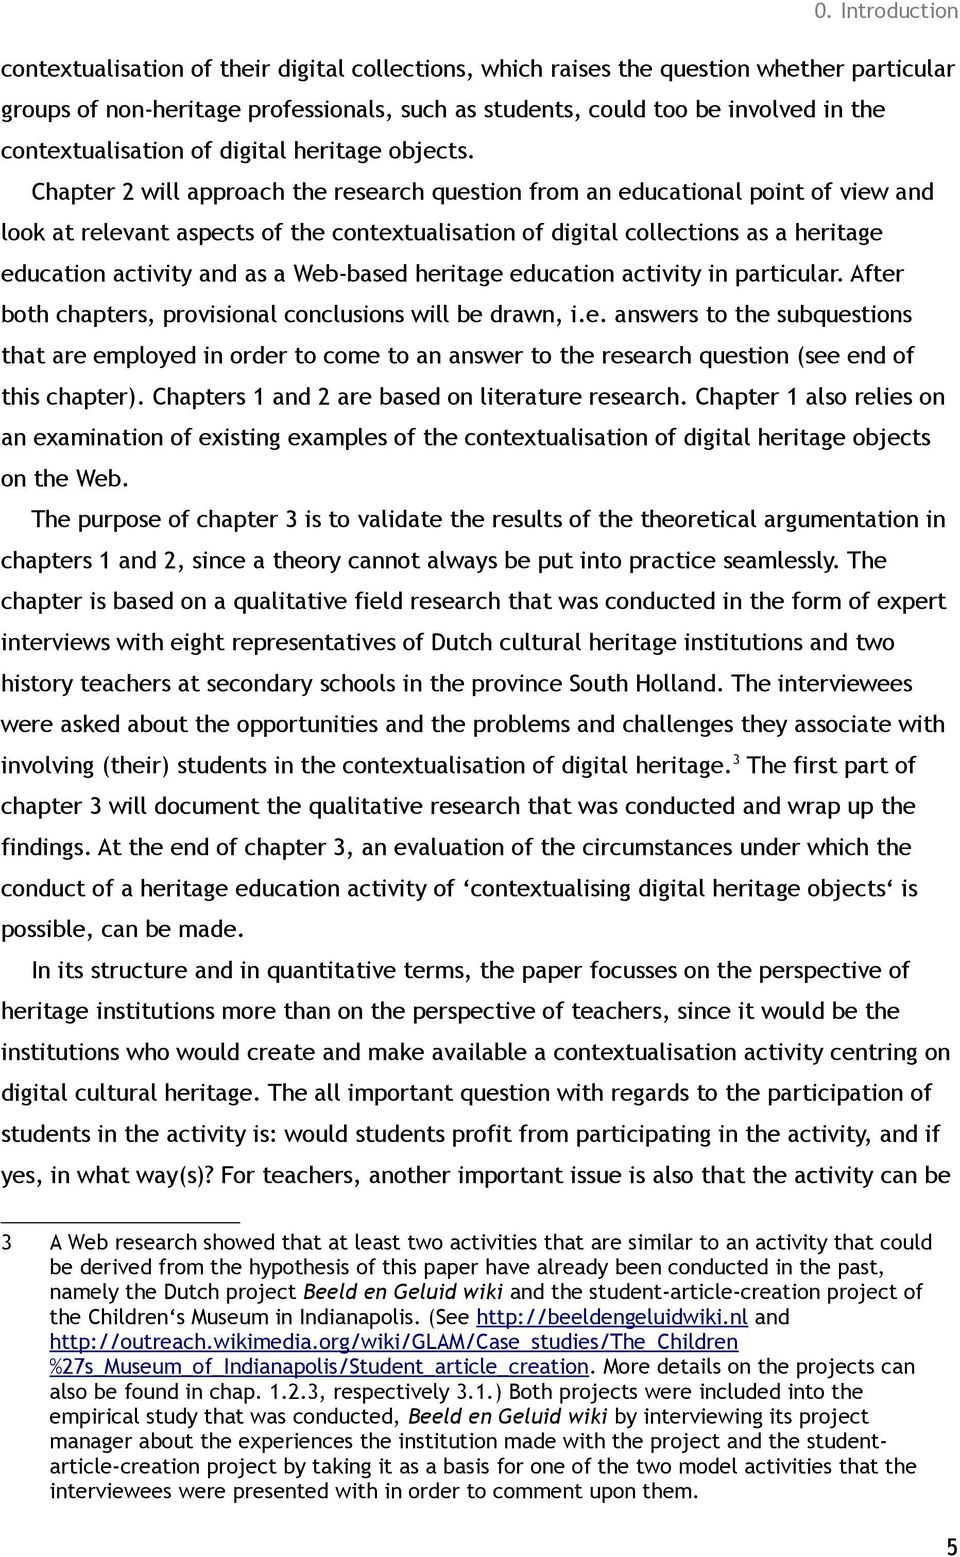 Chapter 2 will approach the research question from an educational point of view and look at relevant aspects of the contextualisation of digital collections as a heritage education activity and as a